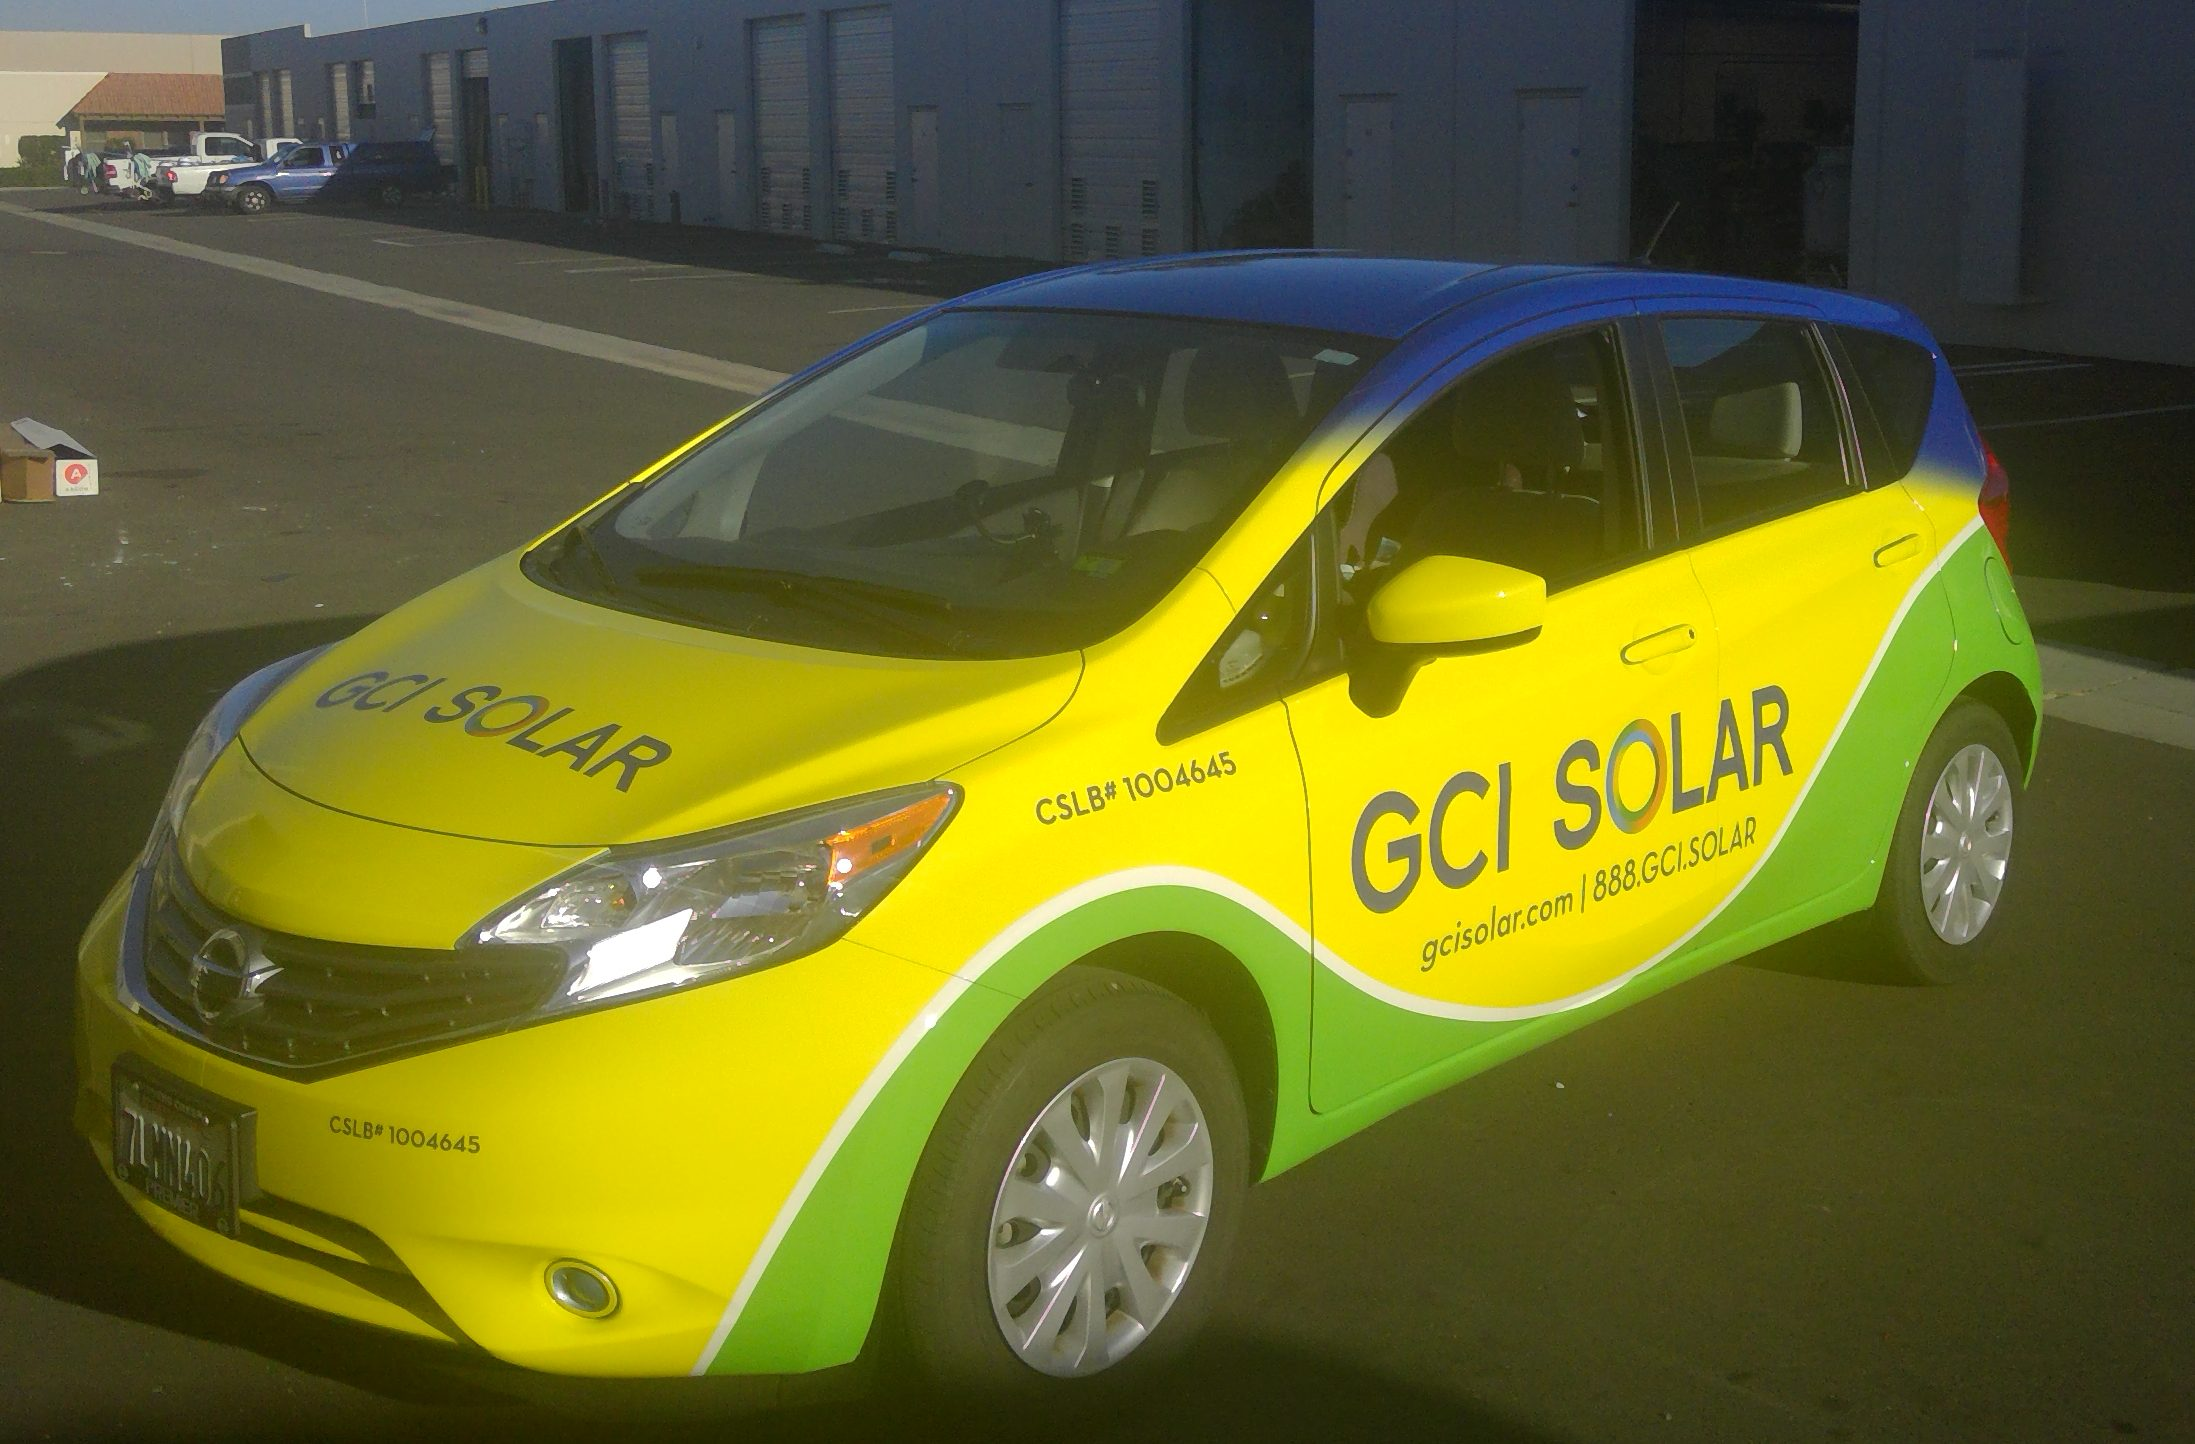 GCI Solar Vehicle Wraps